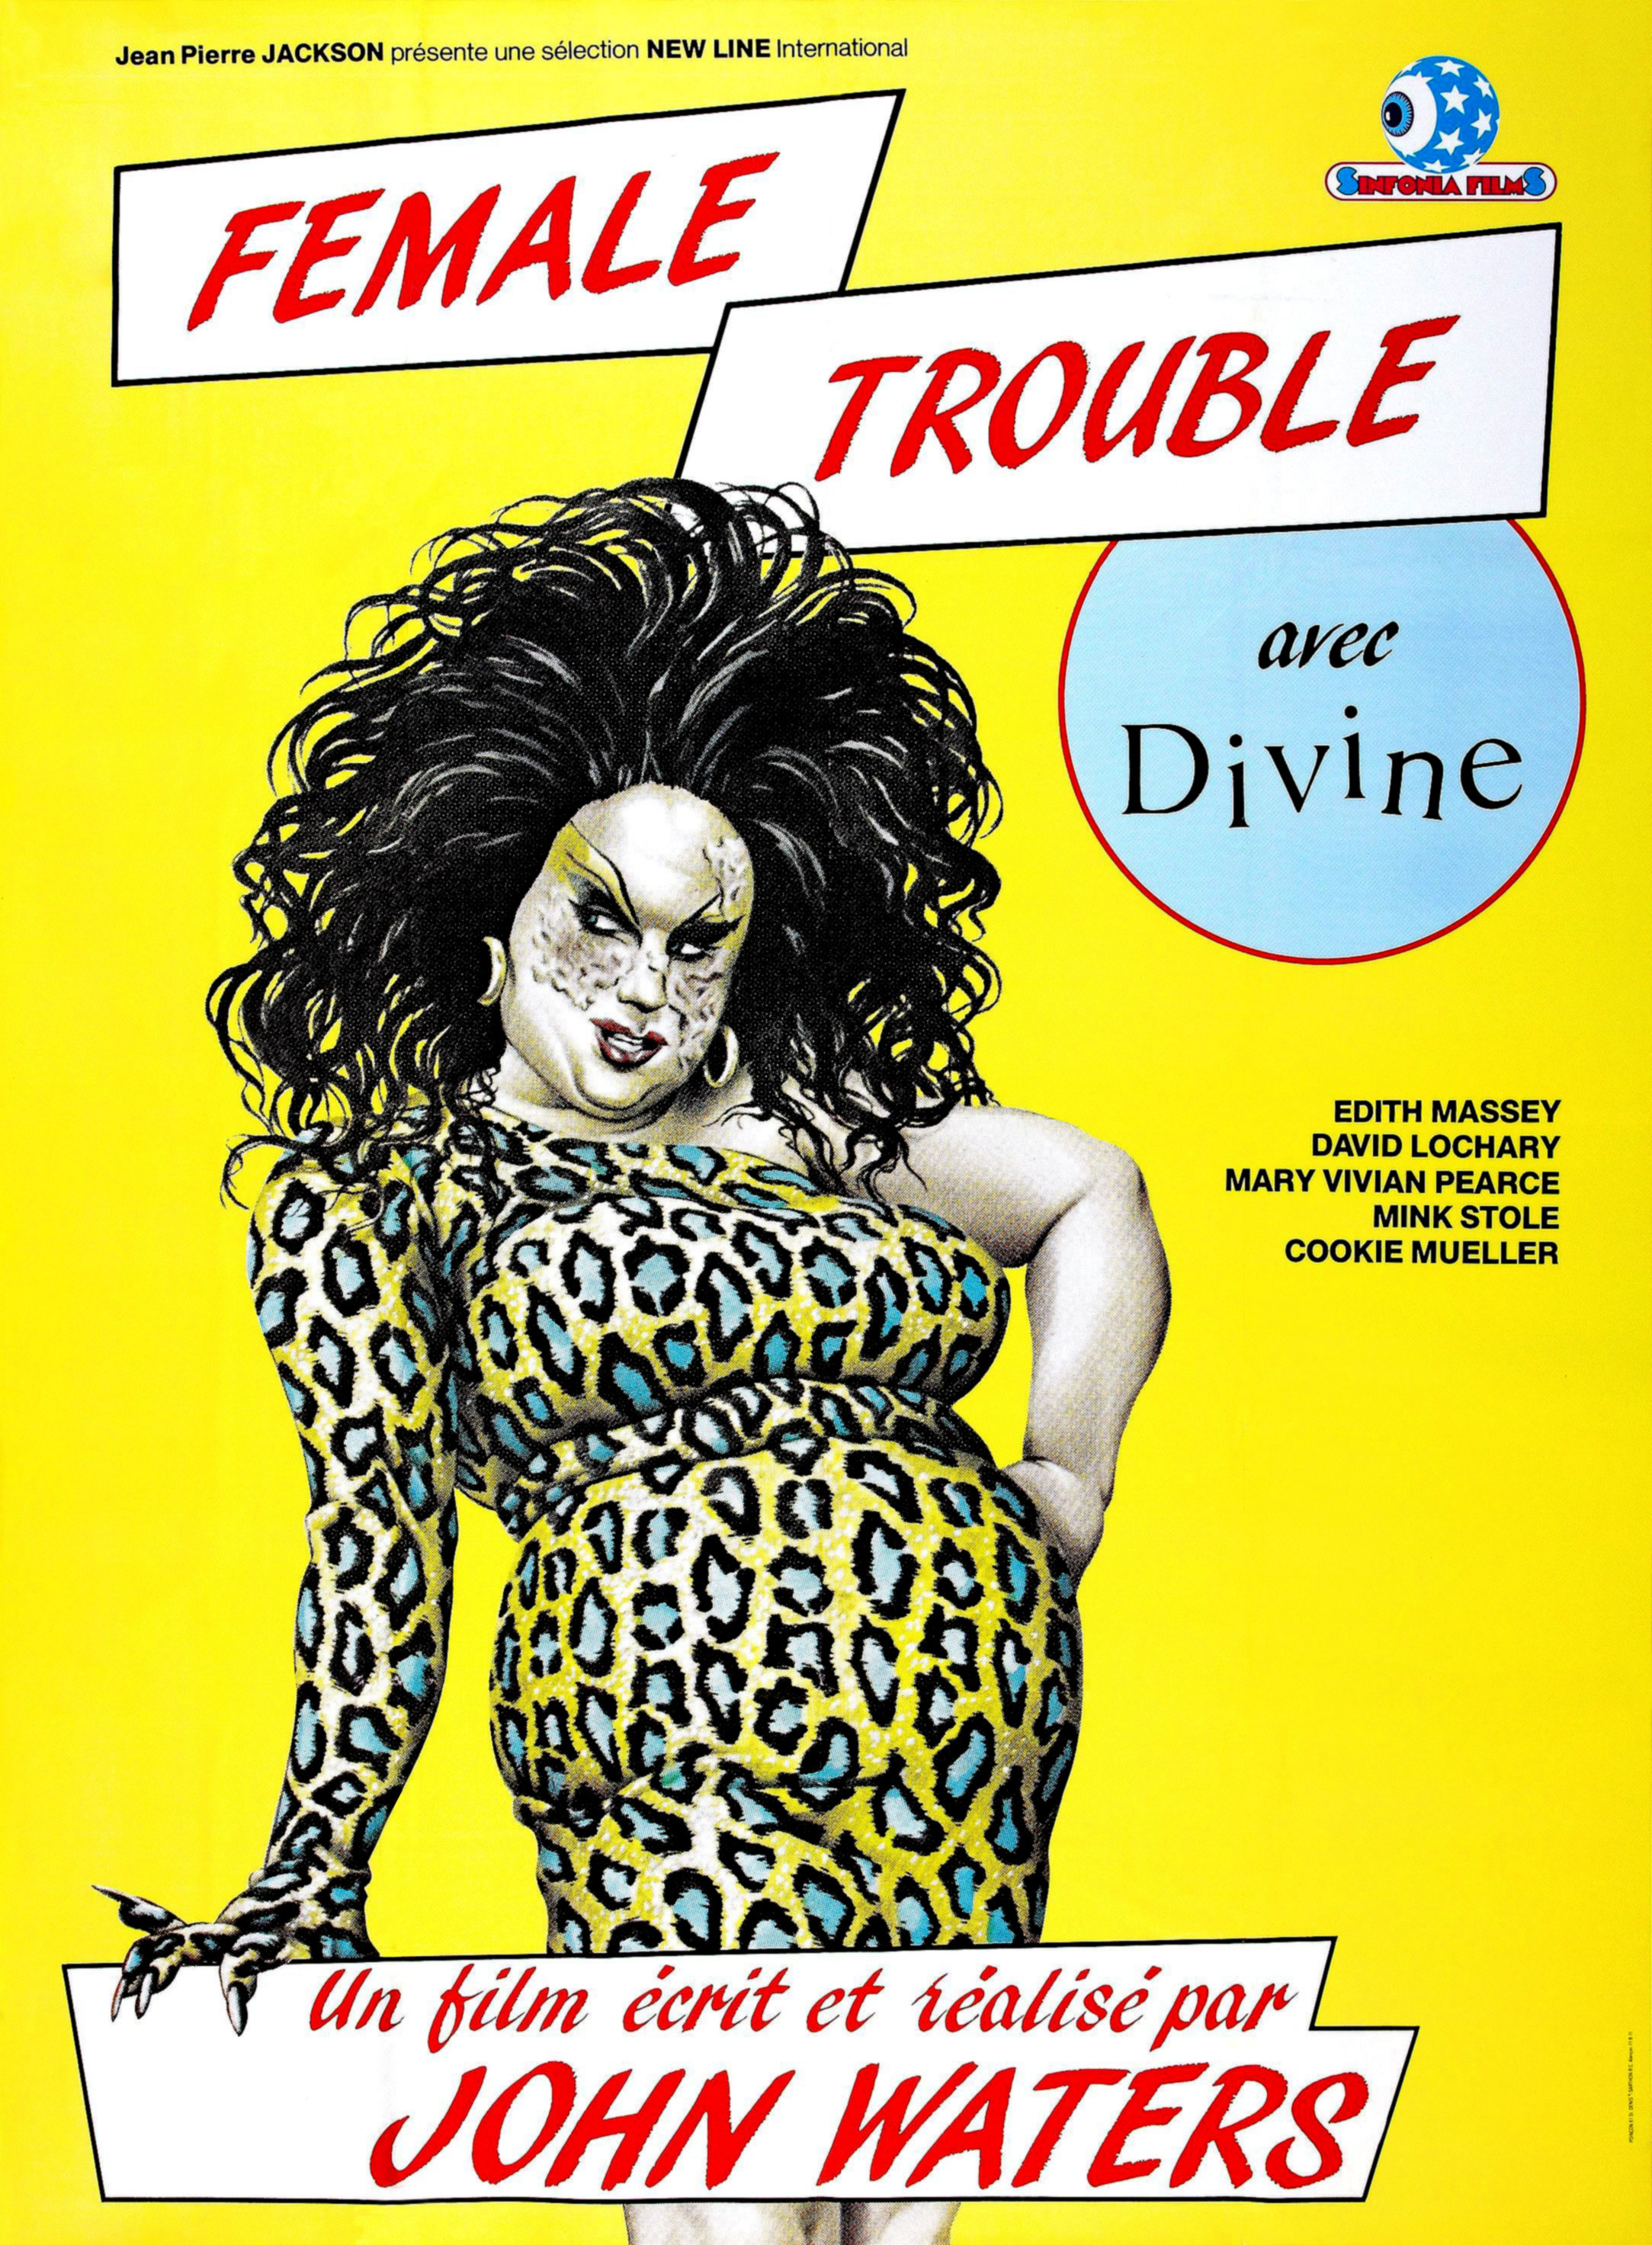 DIvine on a poster for Female Trouble